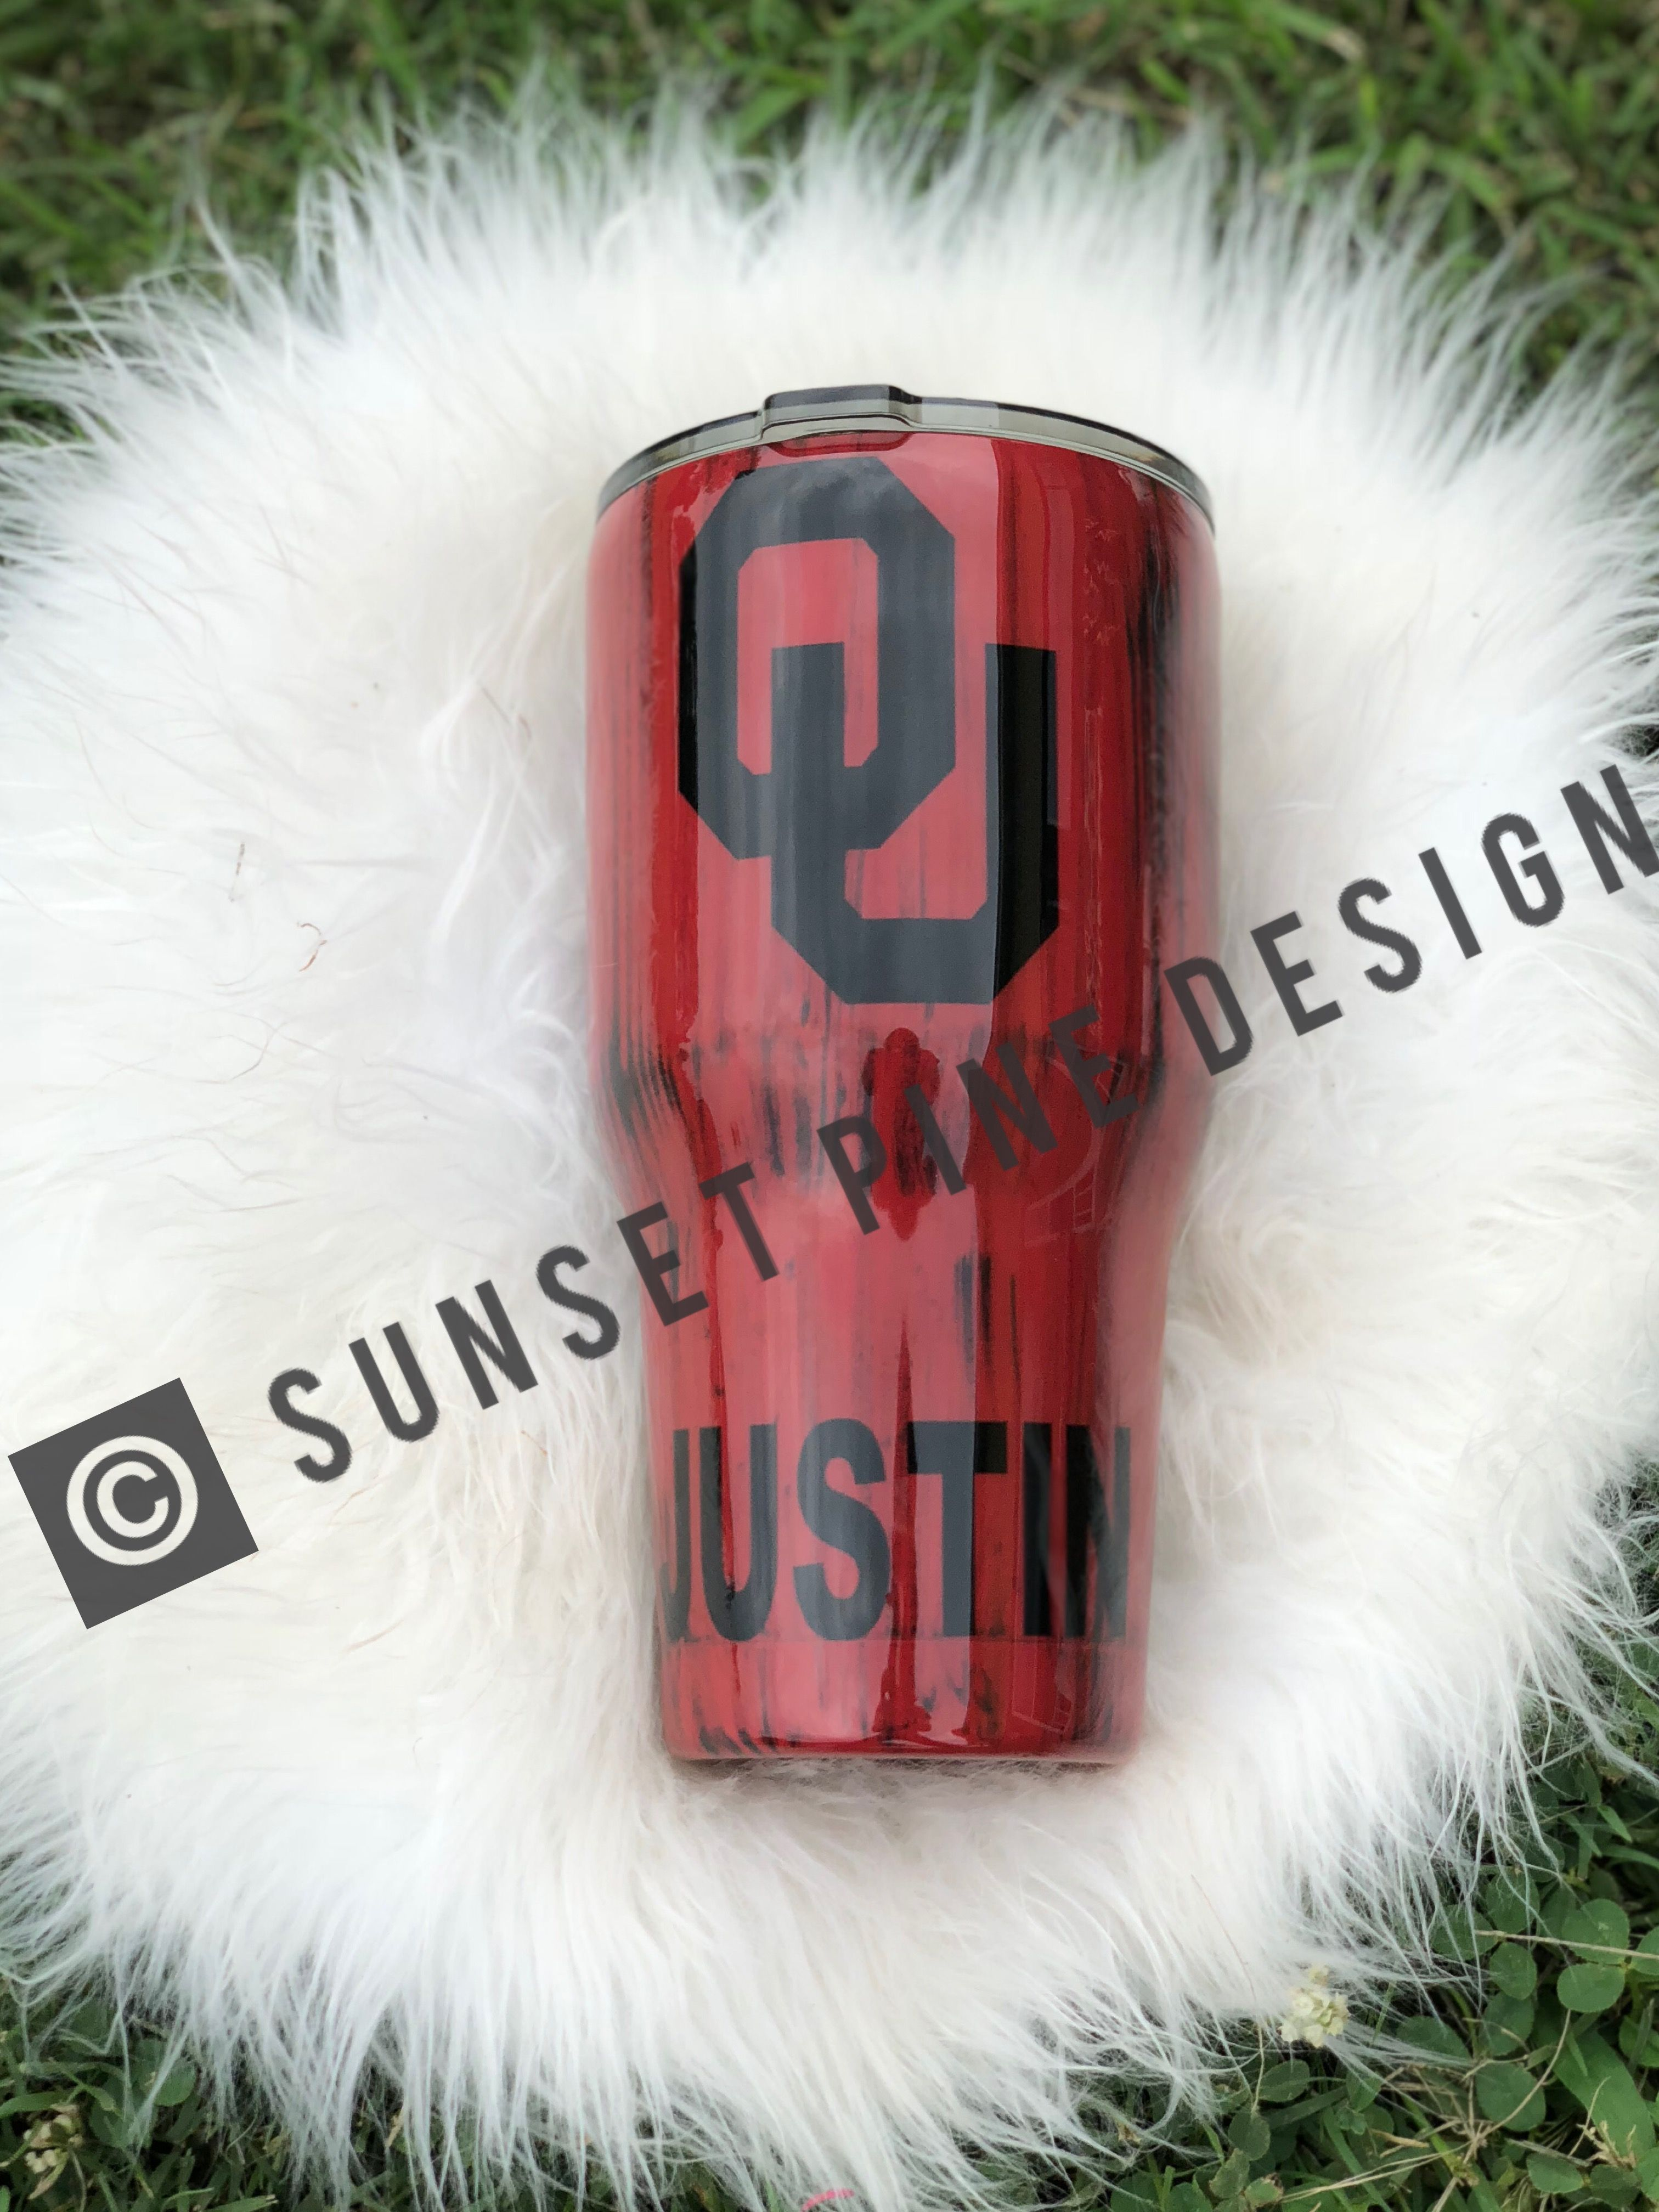 Oklahoma Sooners Tumbler Can Be Customized Sunsetpinedesign Boomersooner Ou Oklahoma Soo Oklahoma Photography Oklahoma Sooners Football Oklahoma Sooners